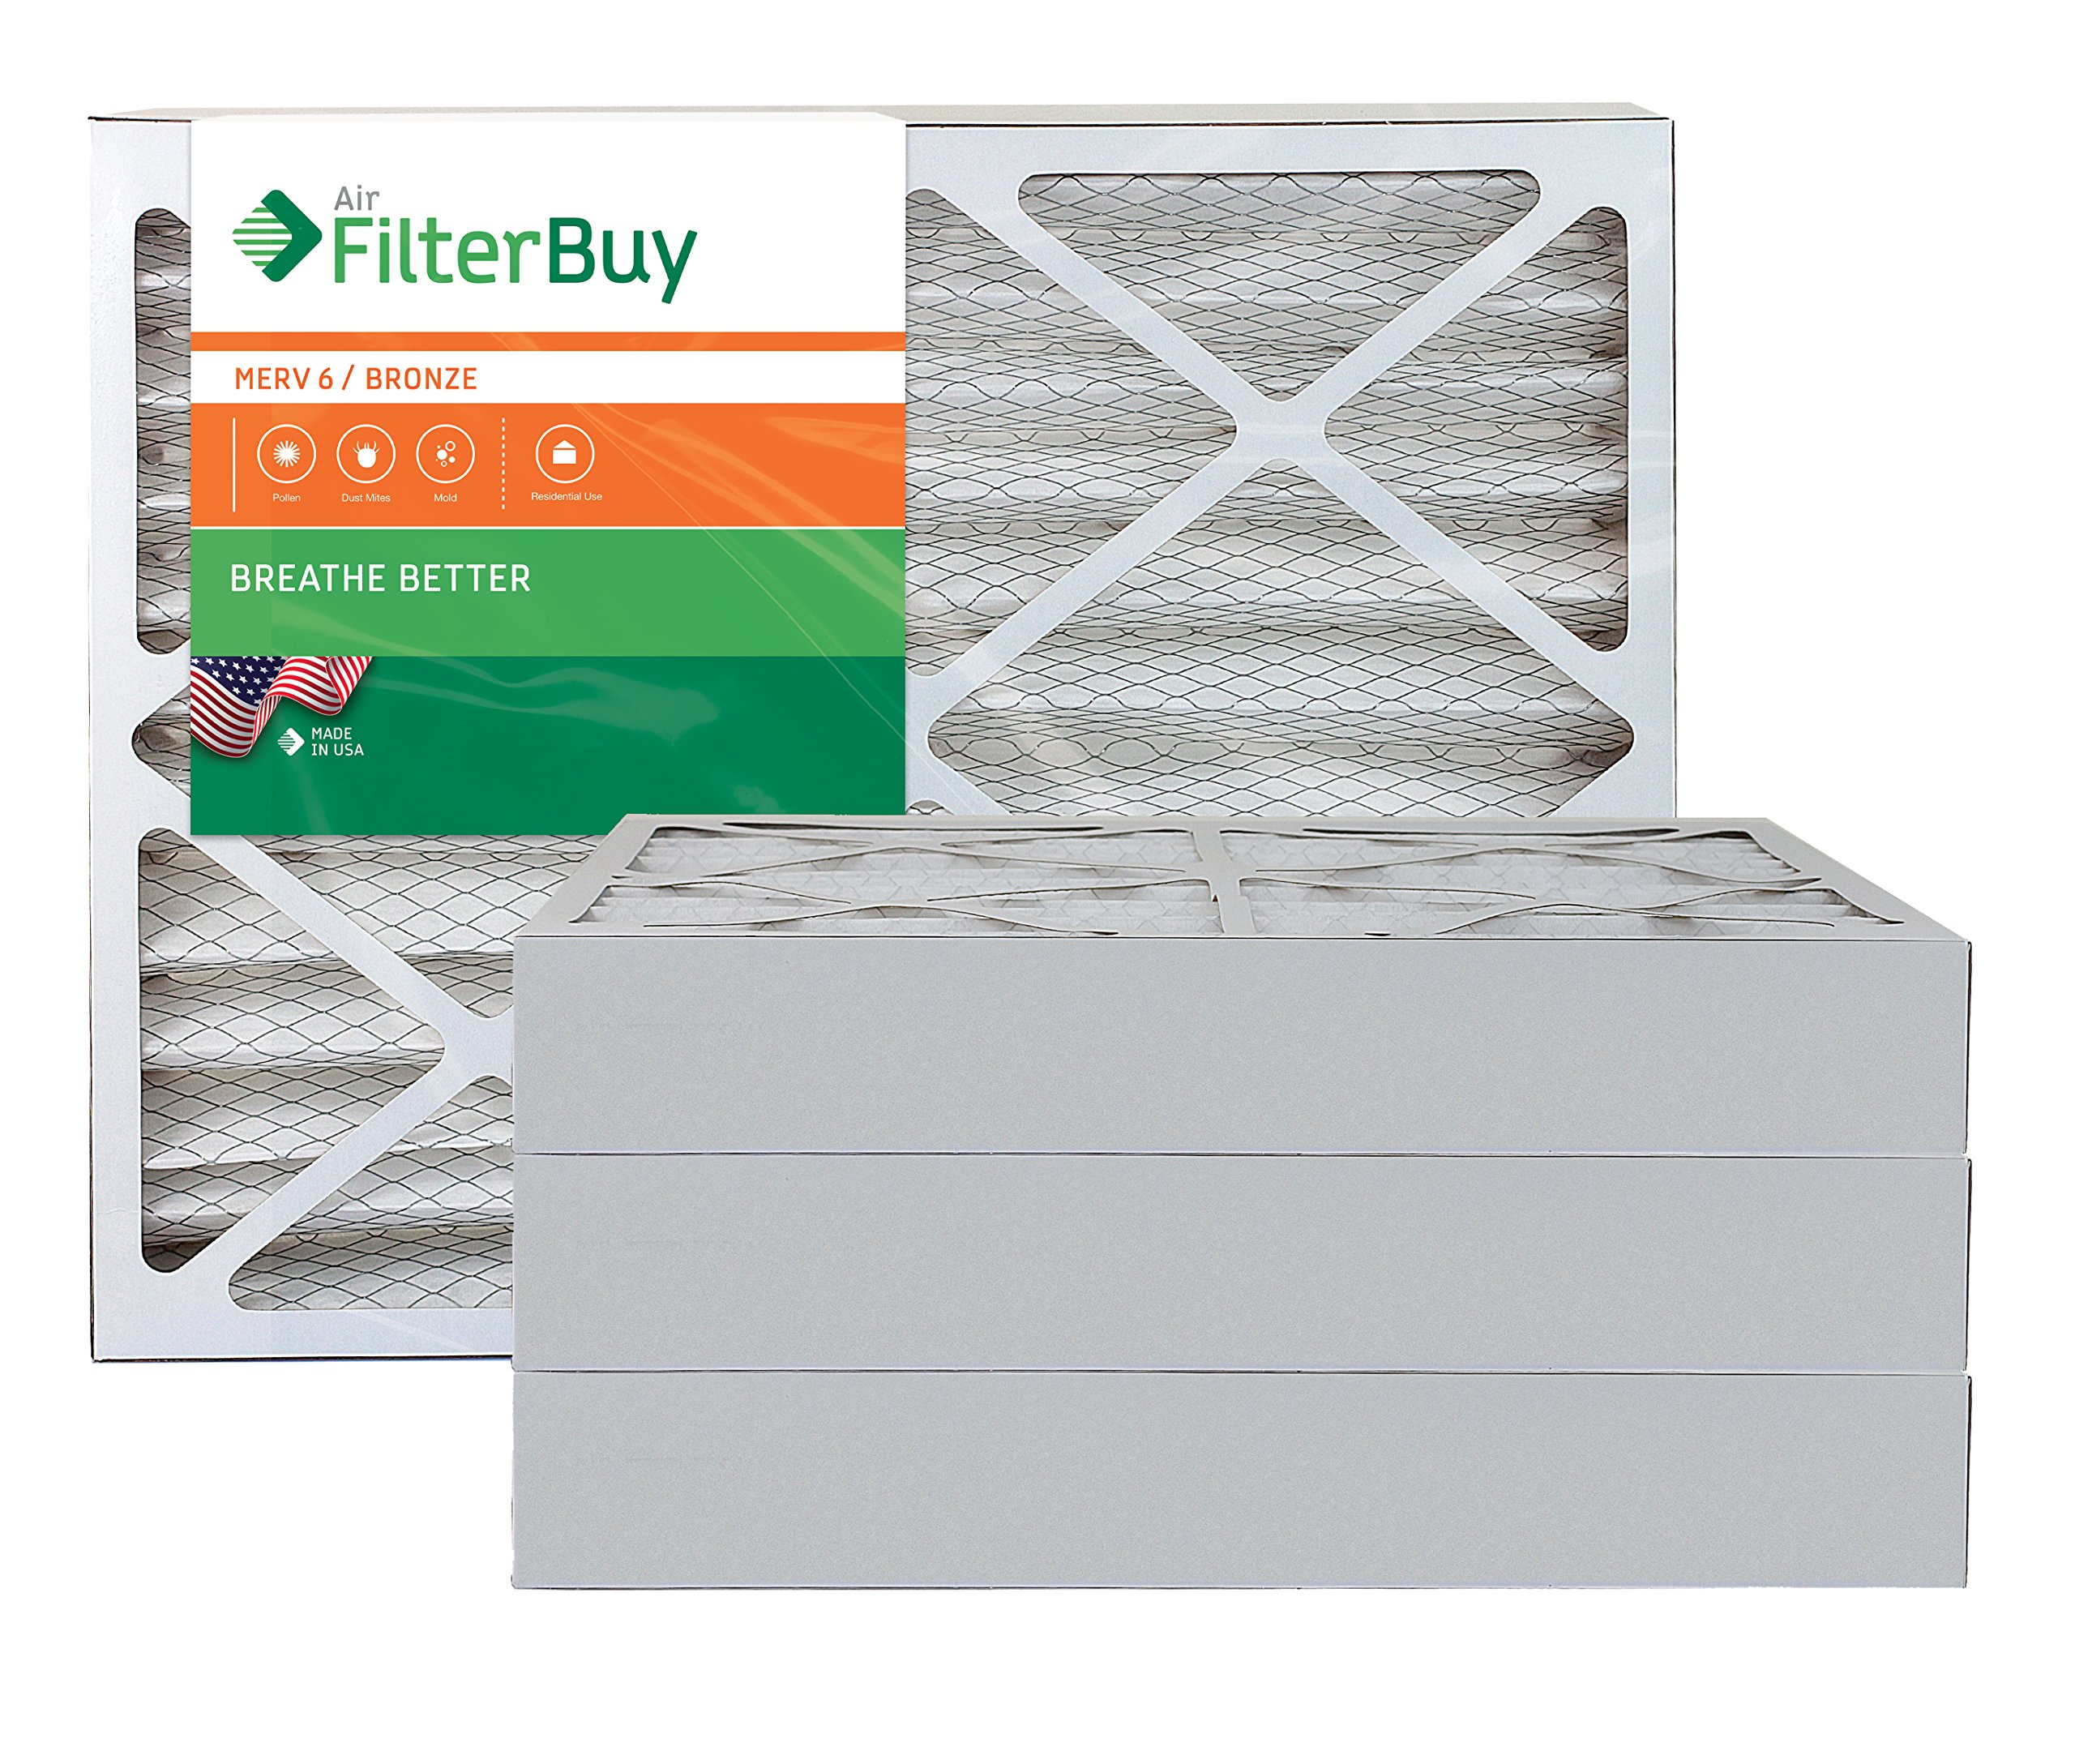 AFB Bronze MERV 6 28x30x4 Pleated AC Furnace Air Filter. Pack of 4 Filters. 100% produced in the USA. by FilterBuy